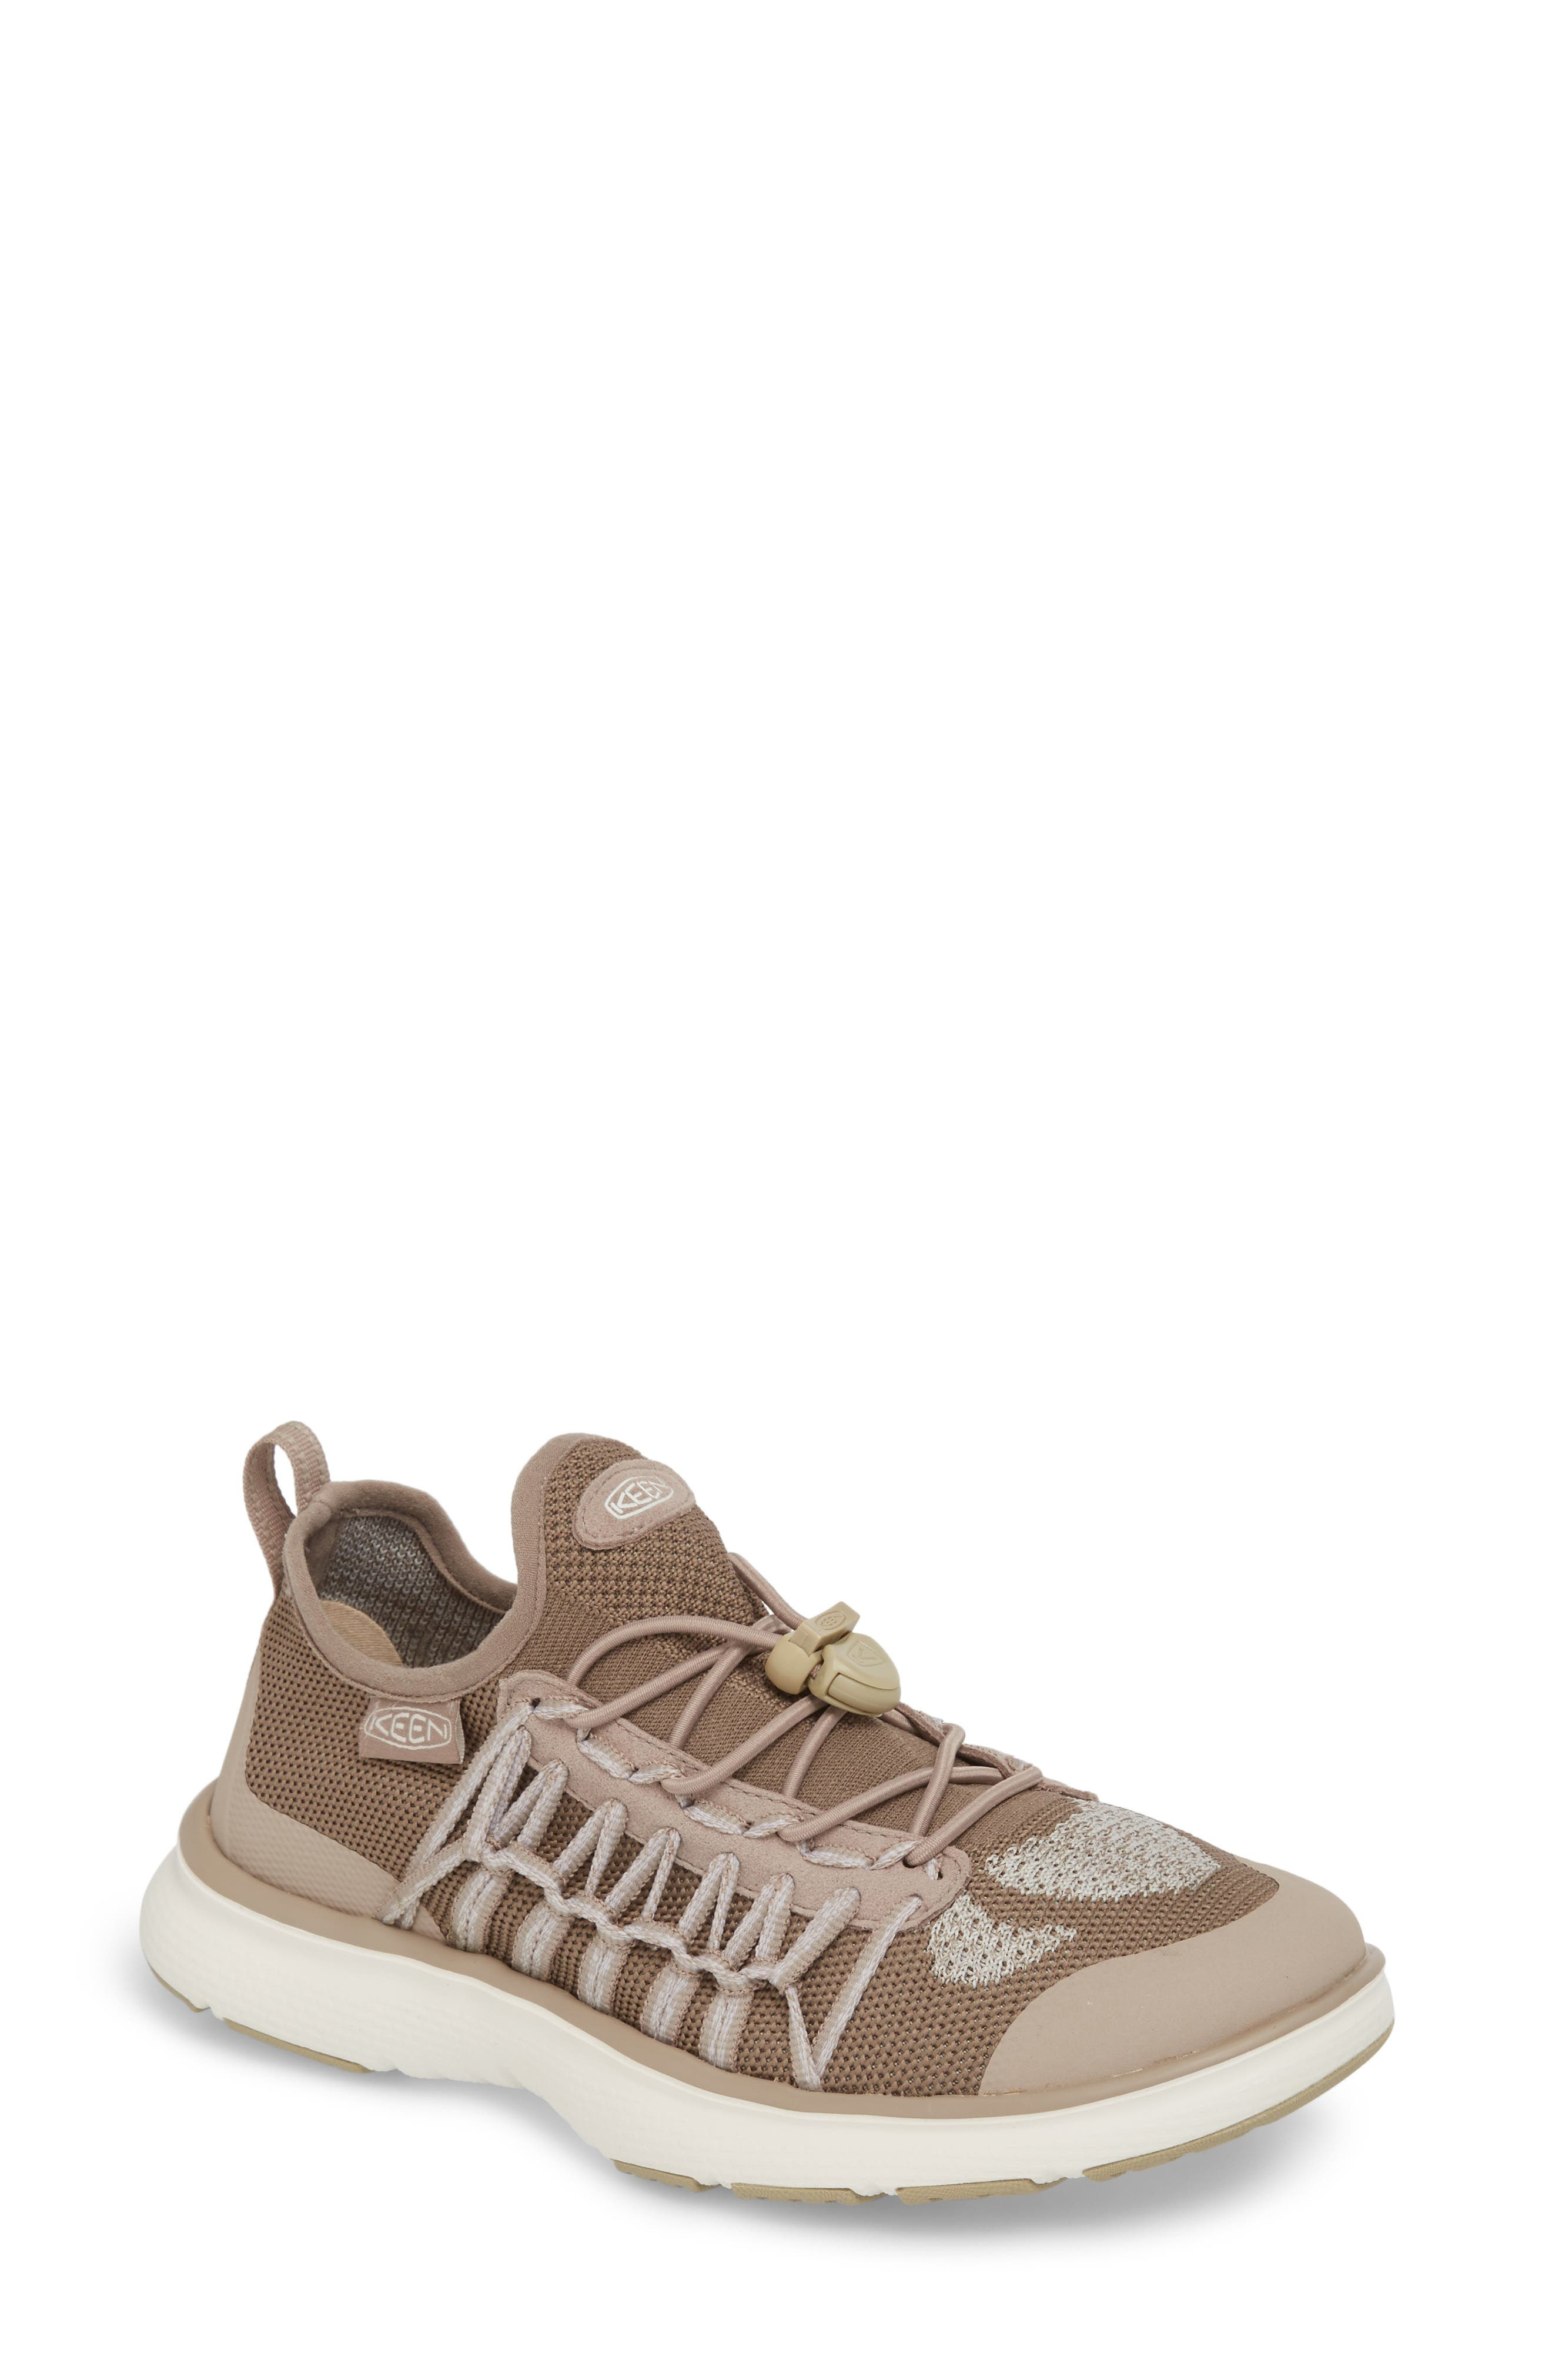 Uneek Exo Water Sneaker,                             Main thumbnail 1, color,                             Plaza Taupe